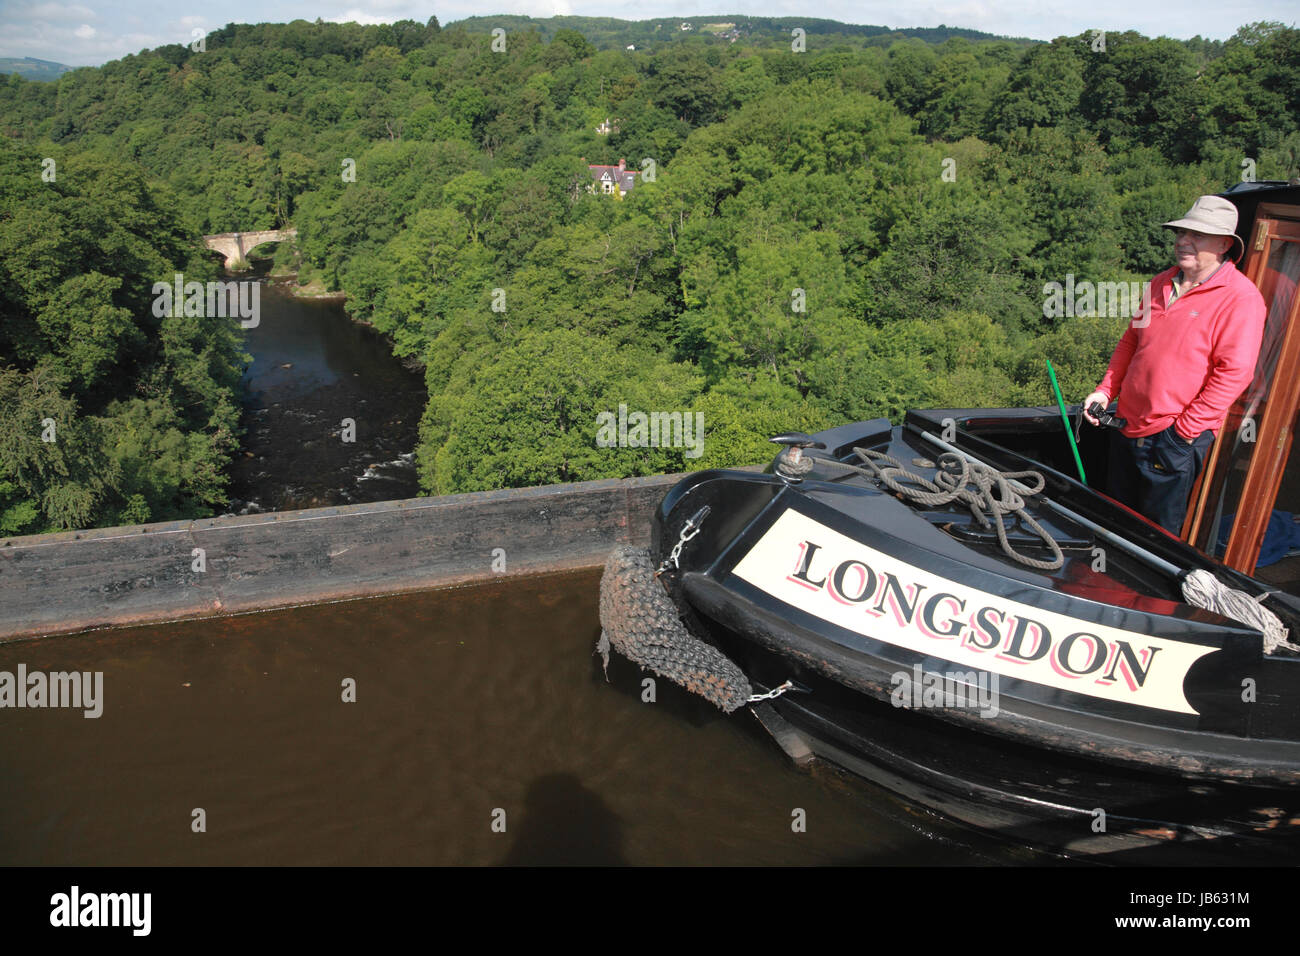 The view from Pontcysyllte Aqueduct looking down on the river Dee and the bridge at Froncysyllte, towards Llangollen - Stock Image